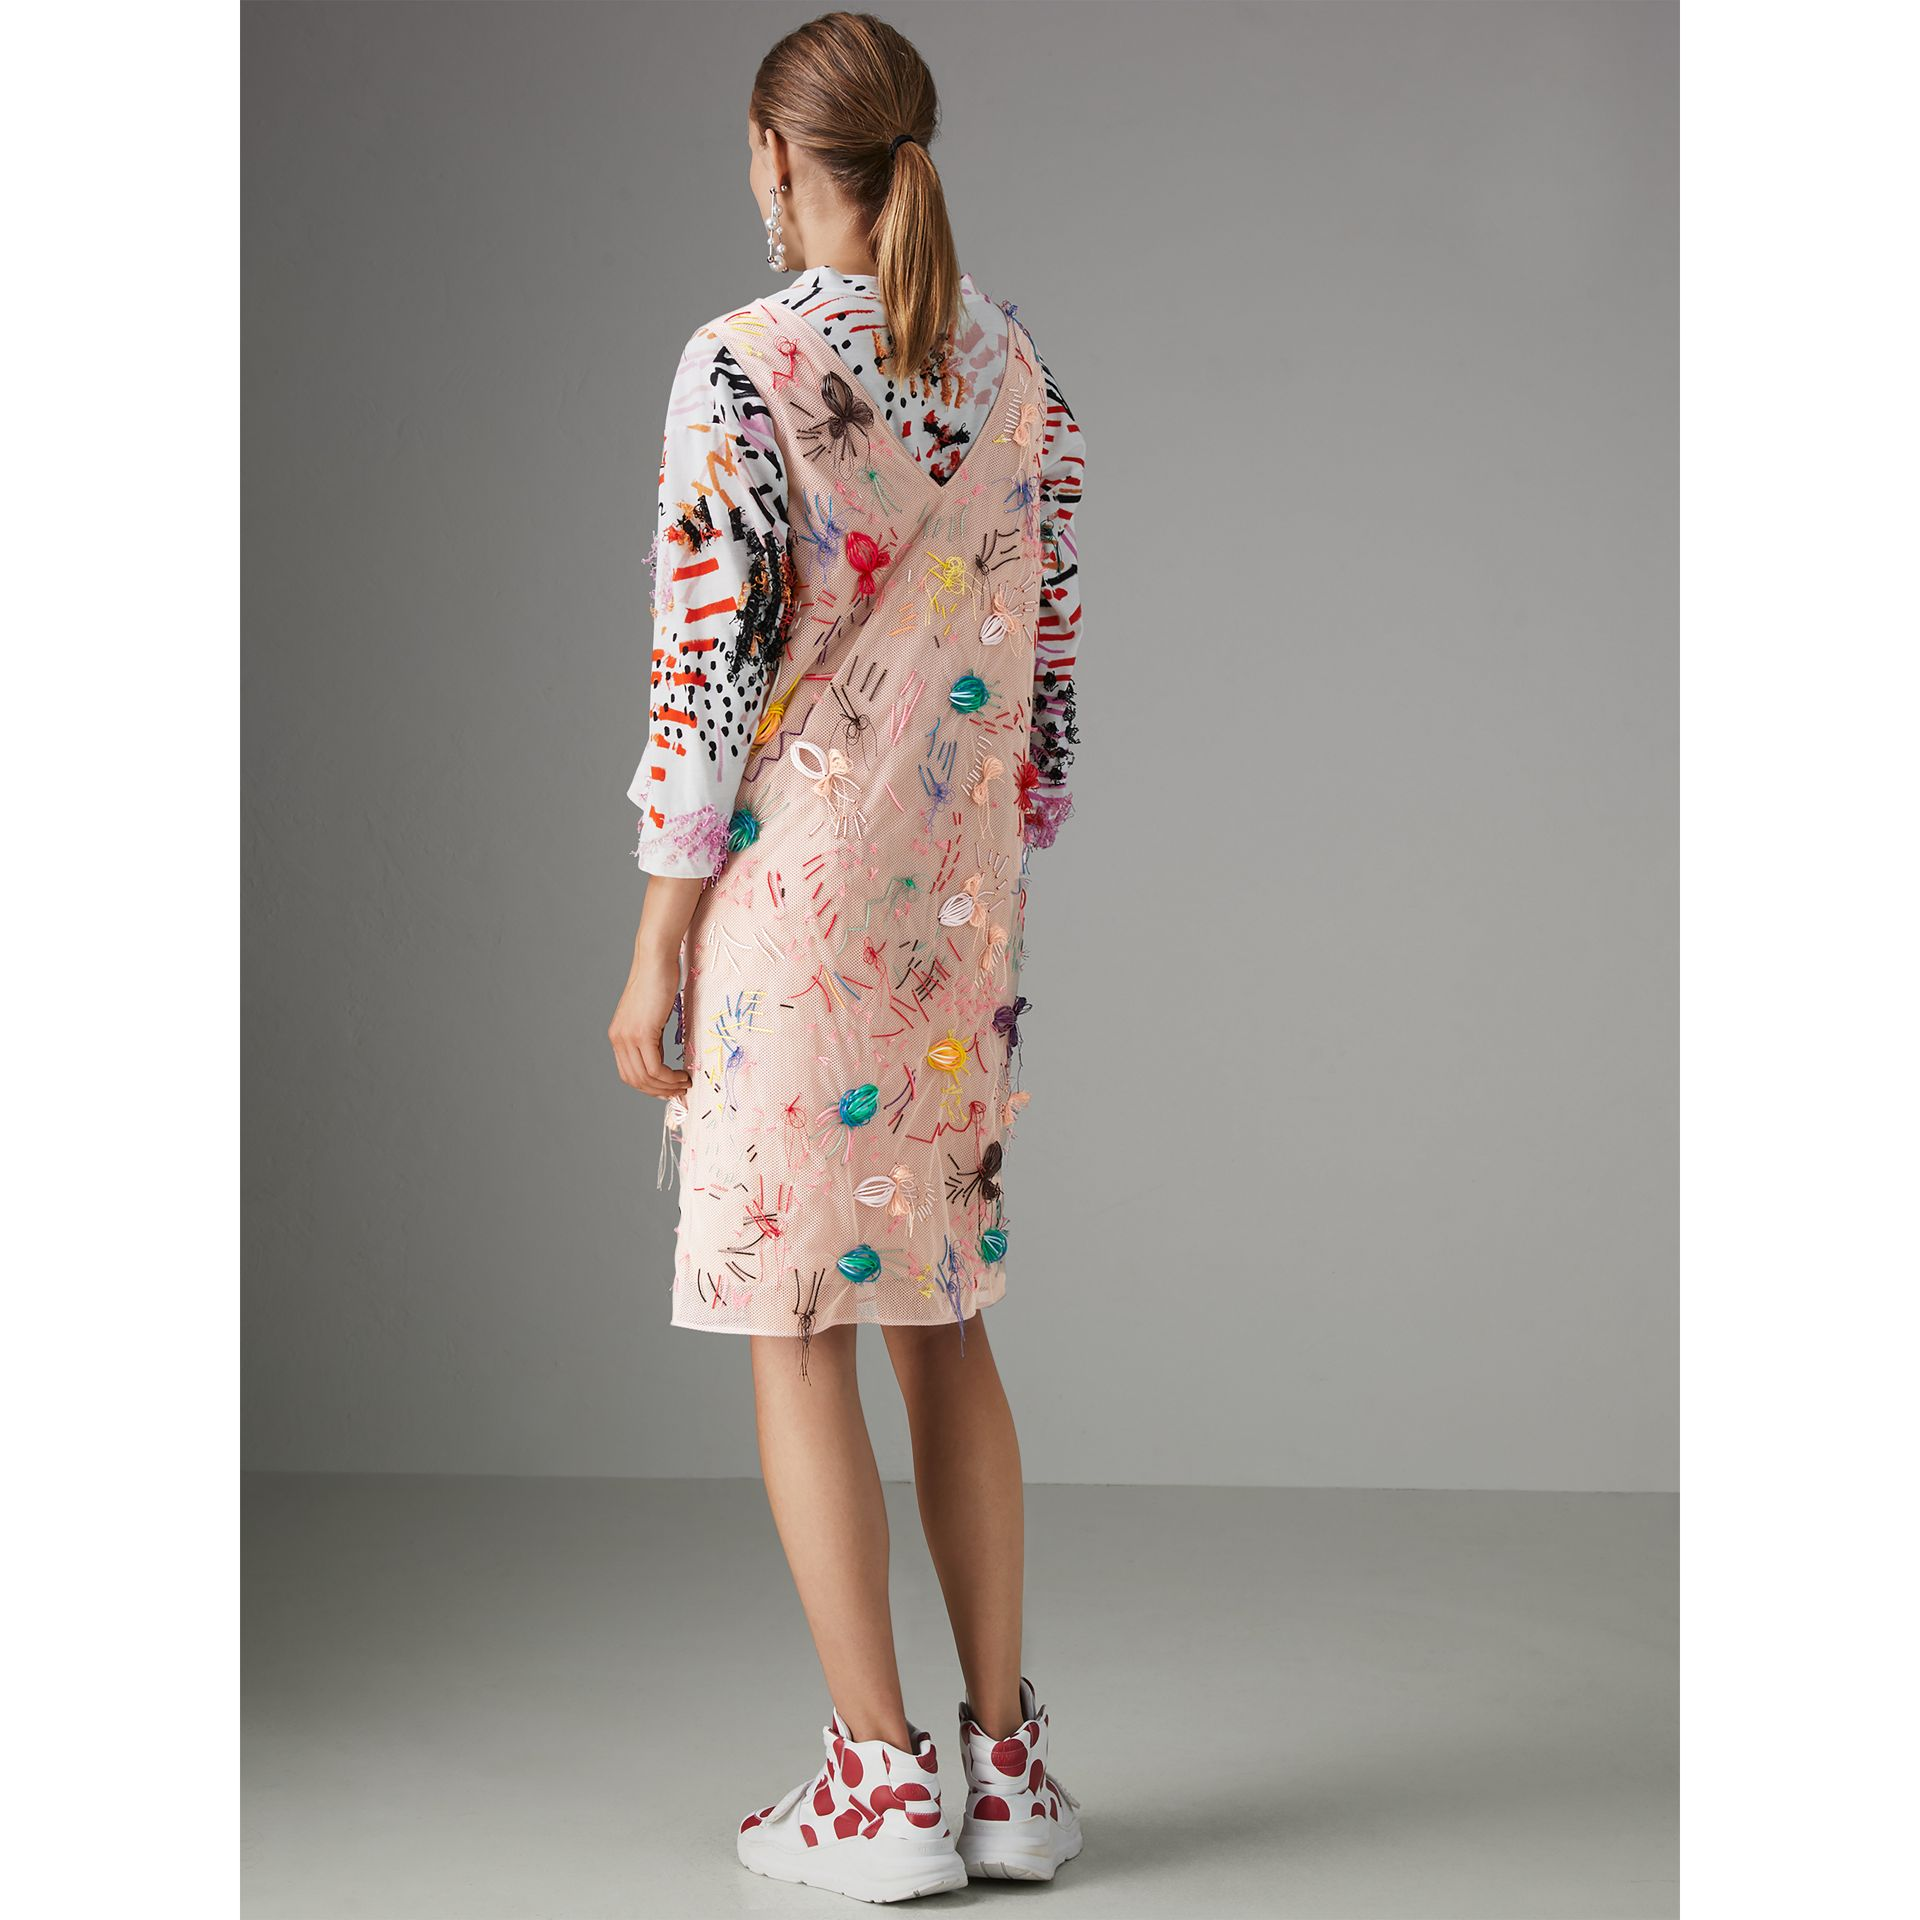 Embellished Sleeveless Dress in Multi-bright Pink - Women | Burberry - gallery image 2